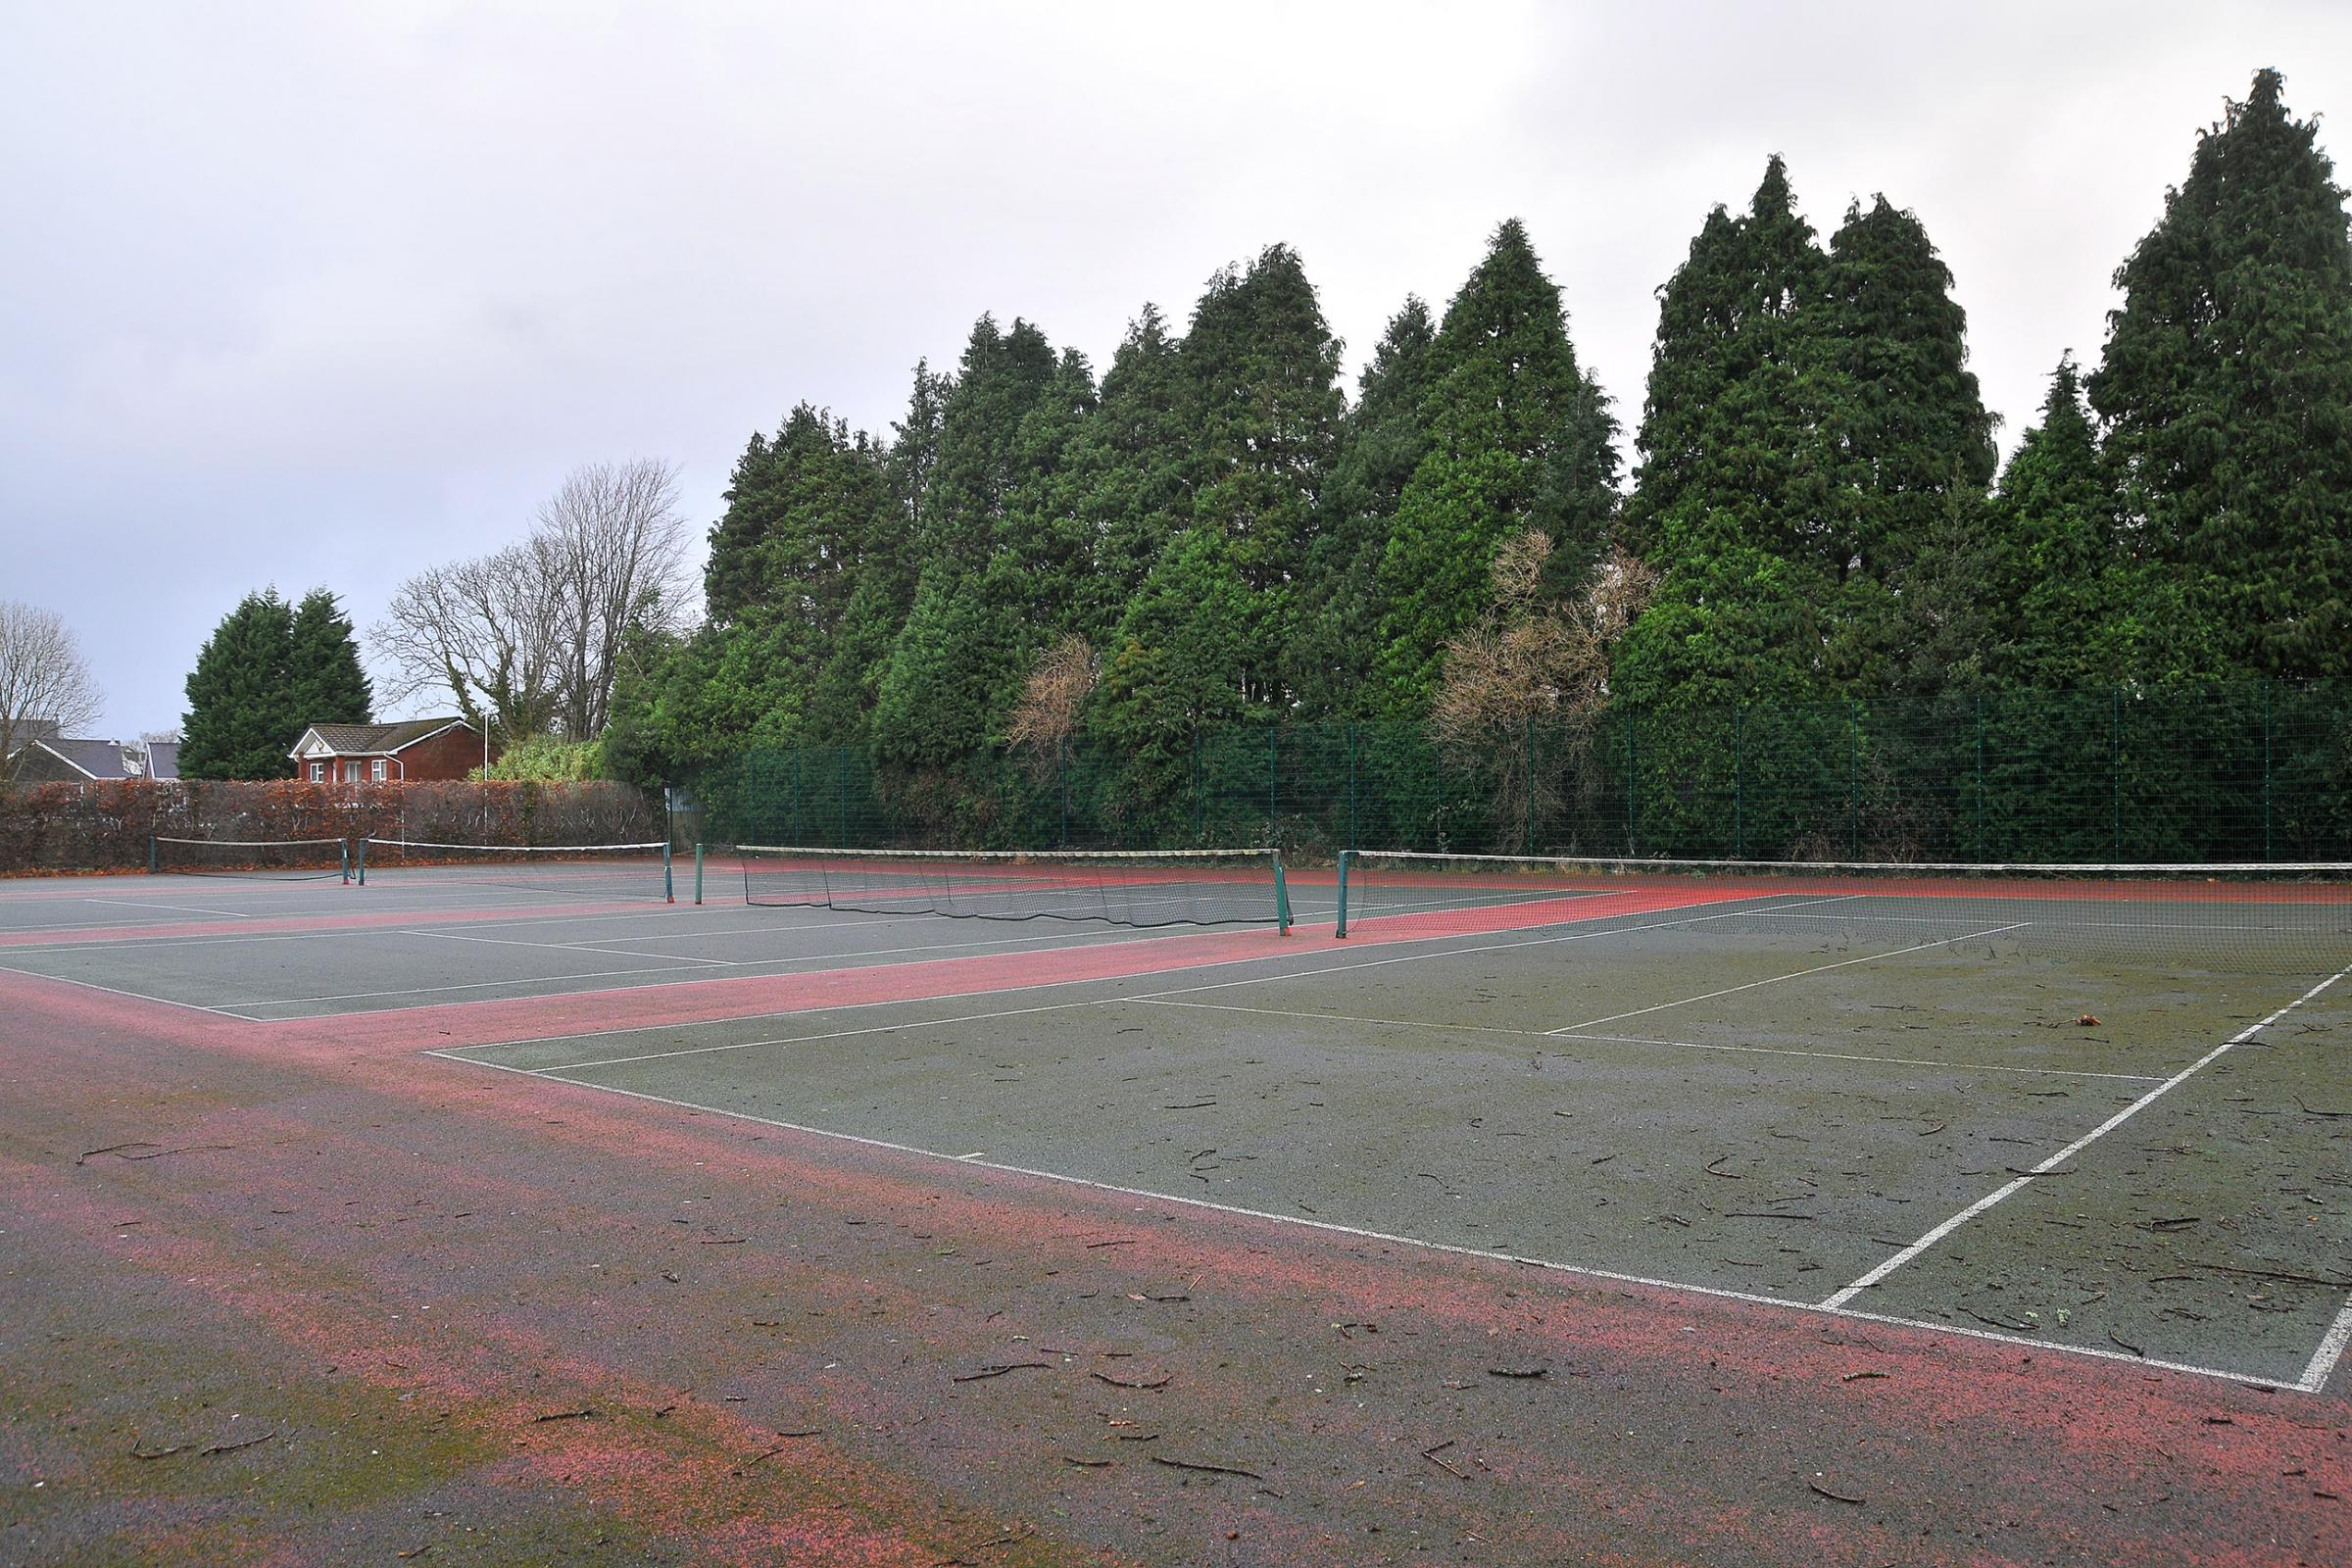 Ammanford tennis court.